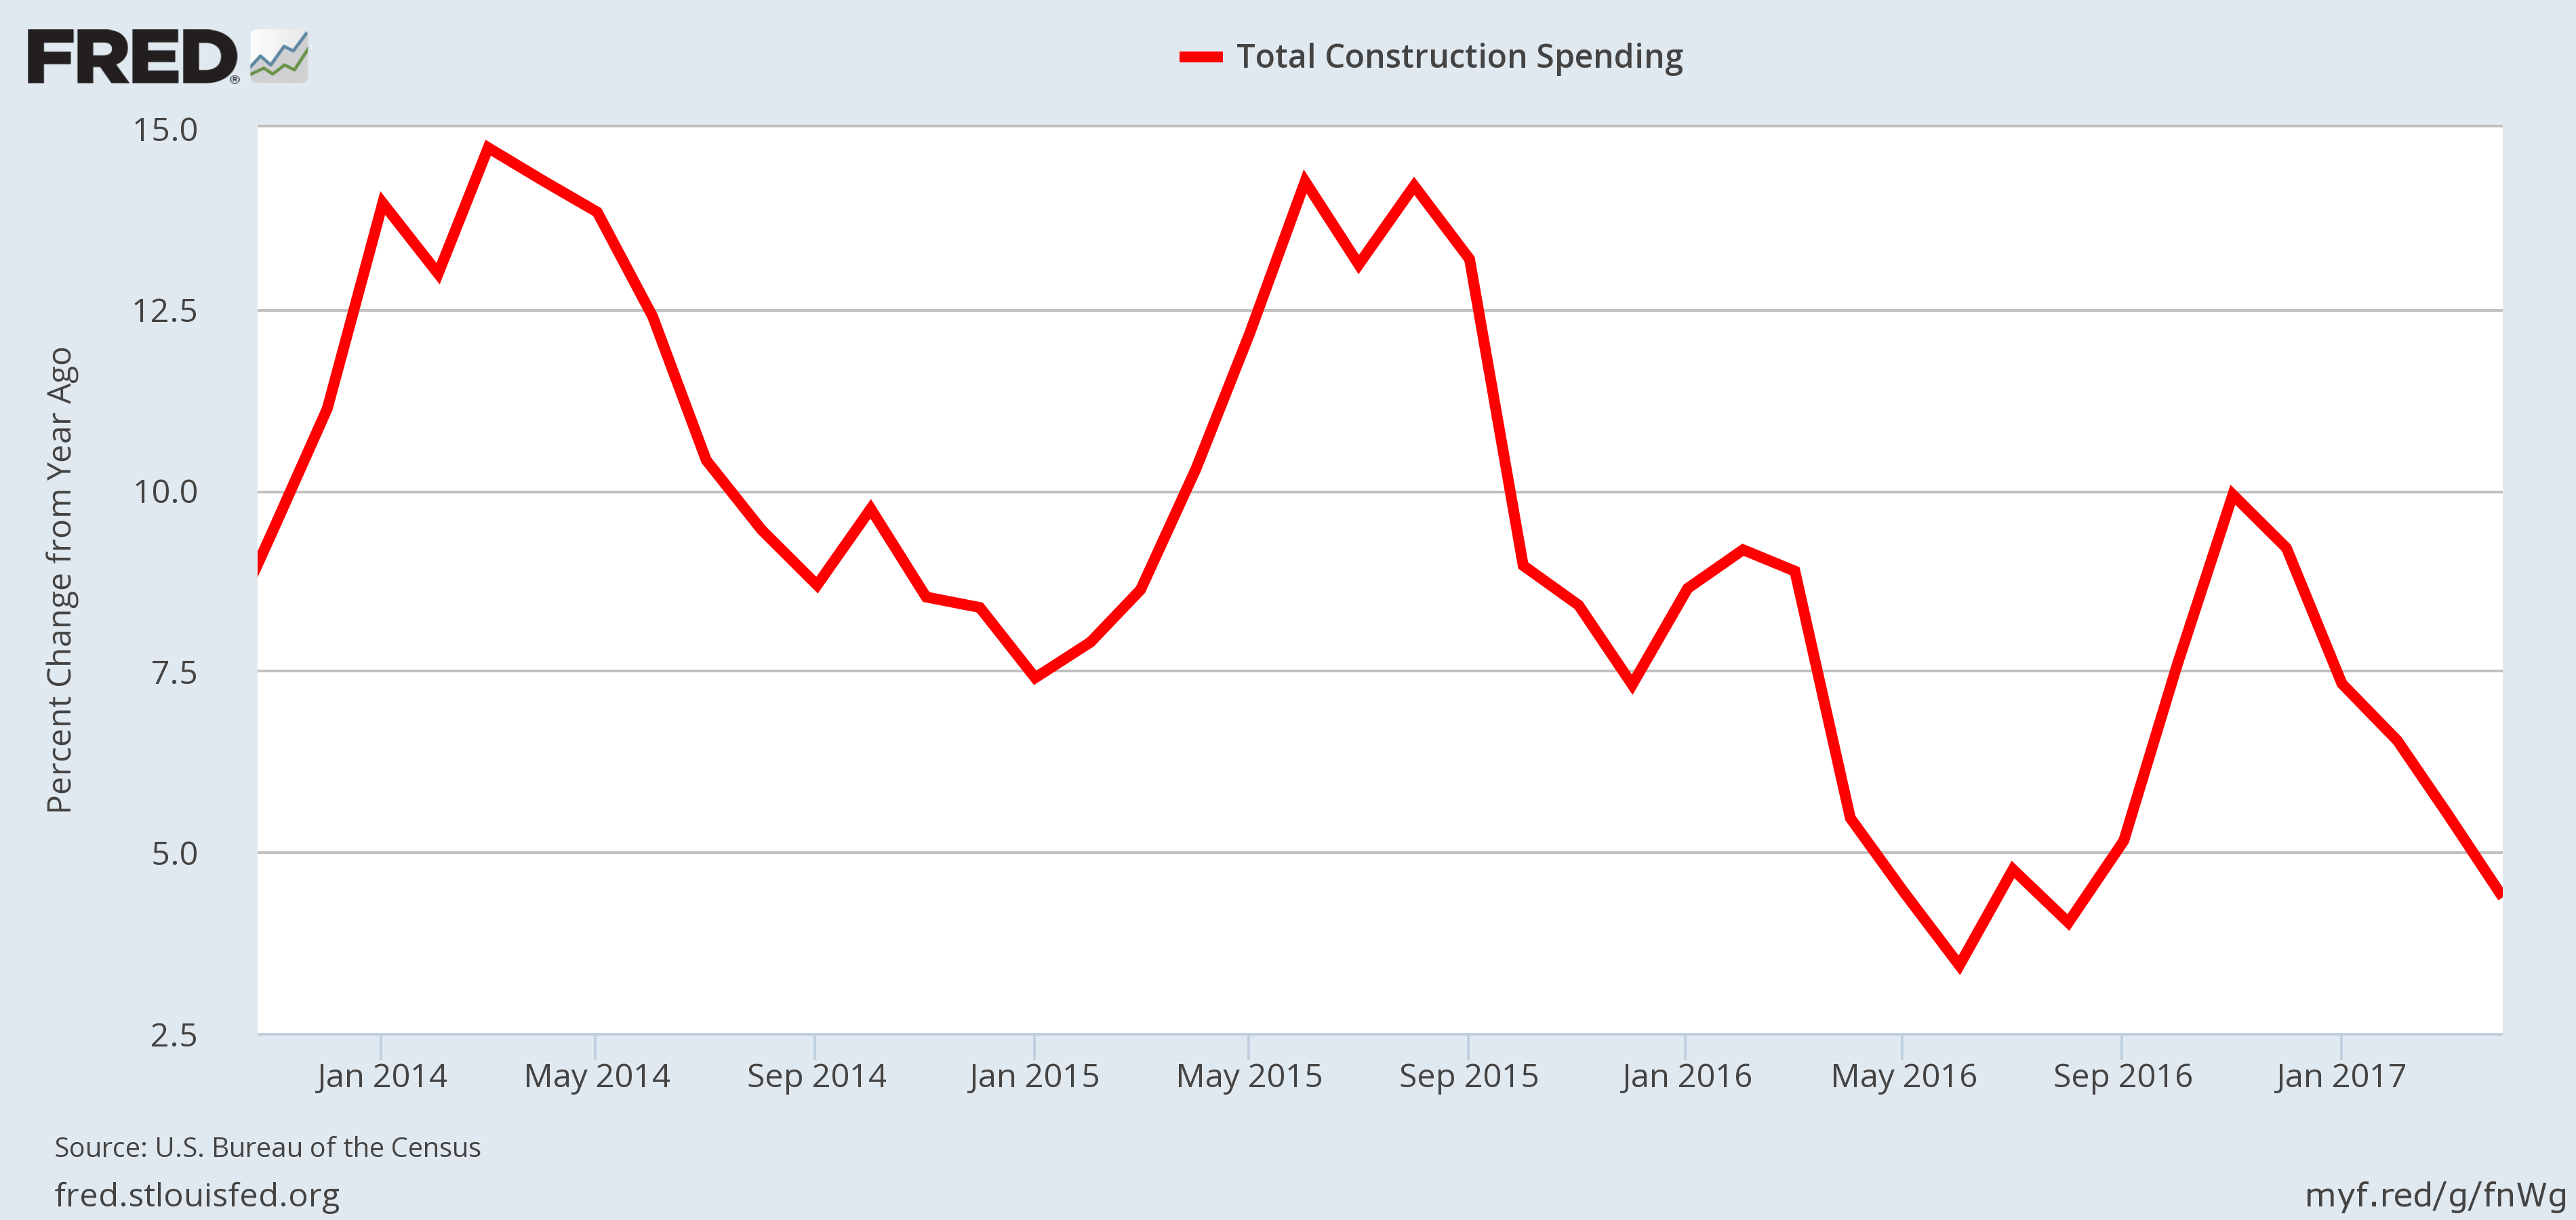 Recession Indicator - Construction Spending